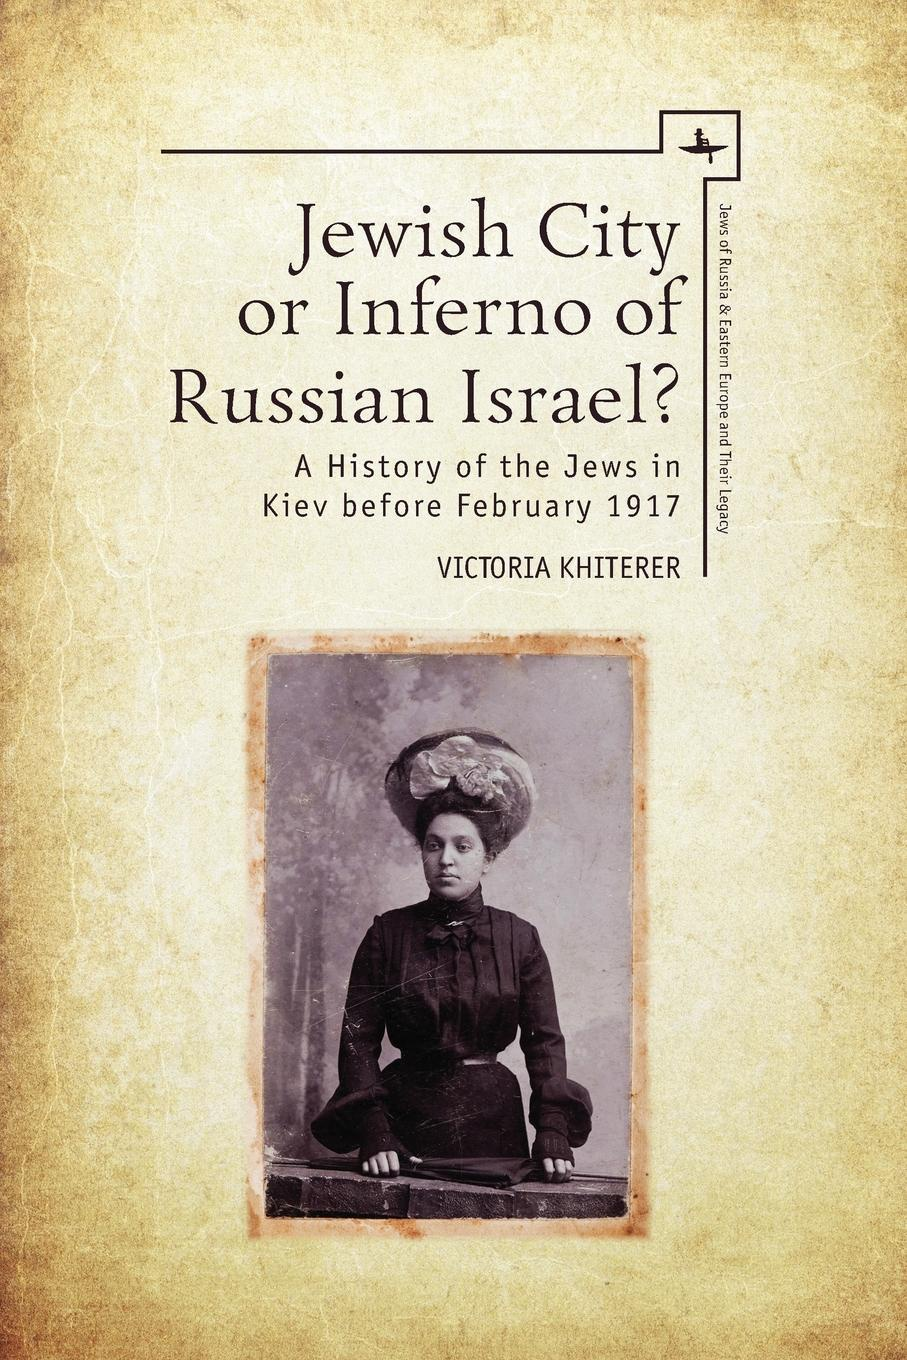 Victoria Khiterer Jewish City or Inferno of Russian Israel.. A History of the Jews in Kiev before February 1917 gustav karpeles a sketch of jewish history